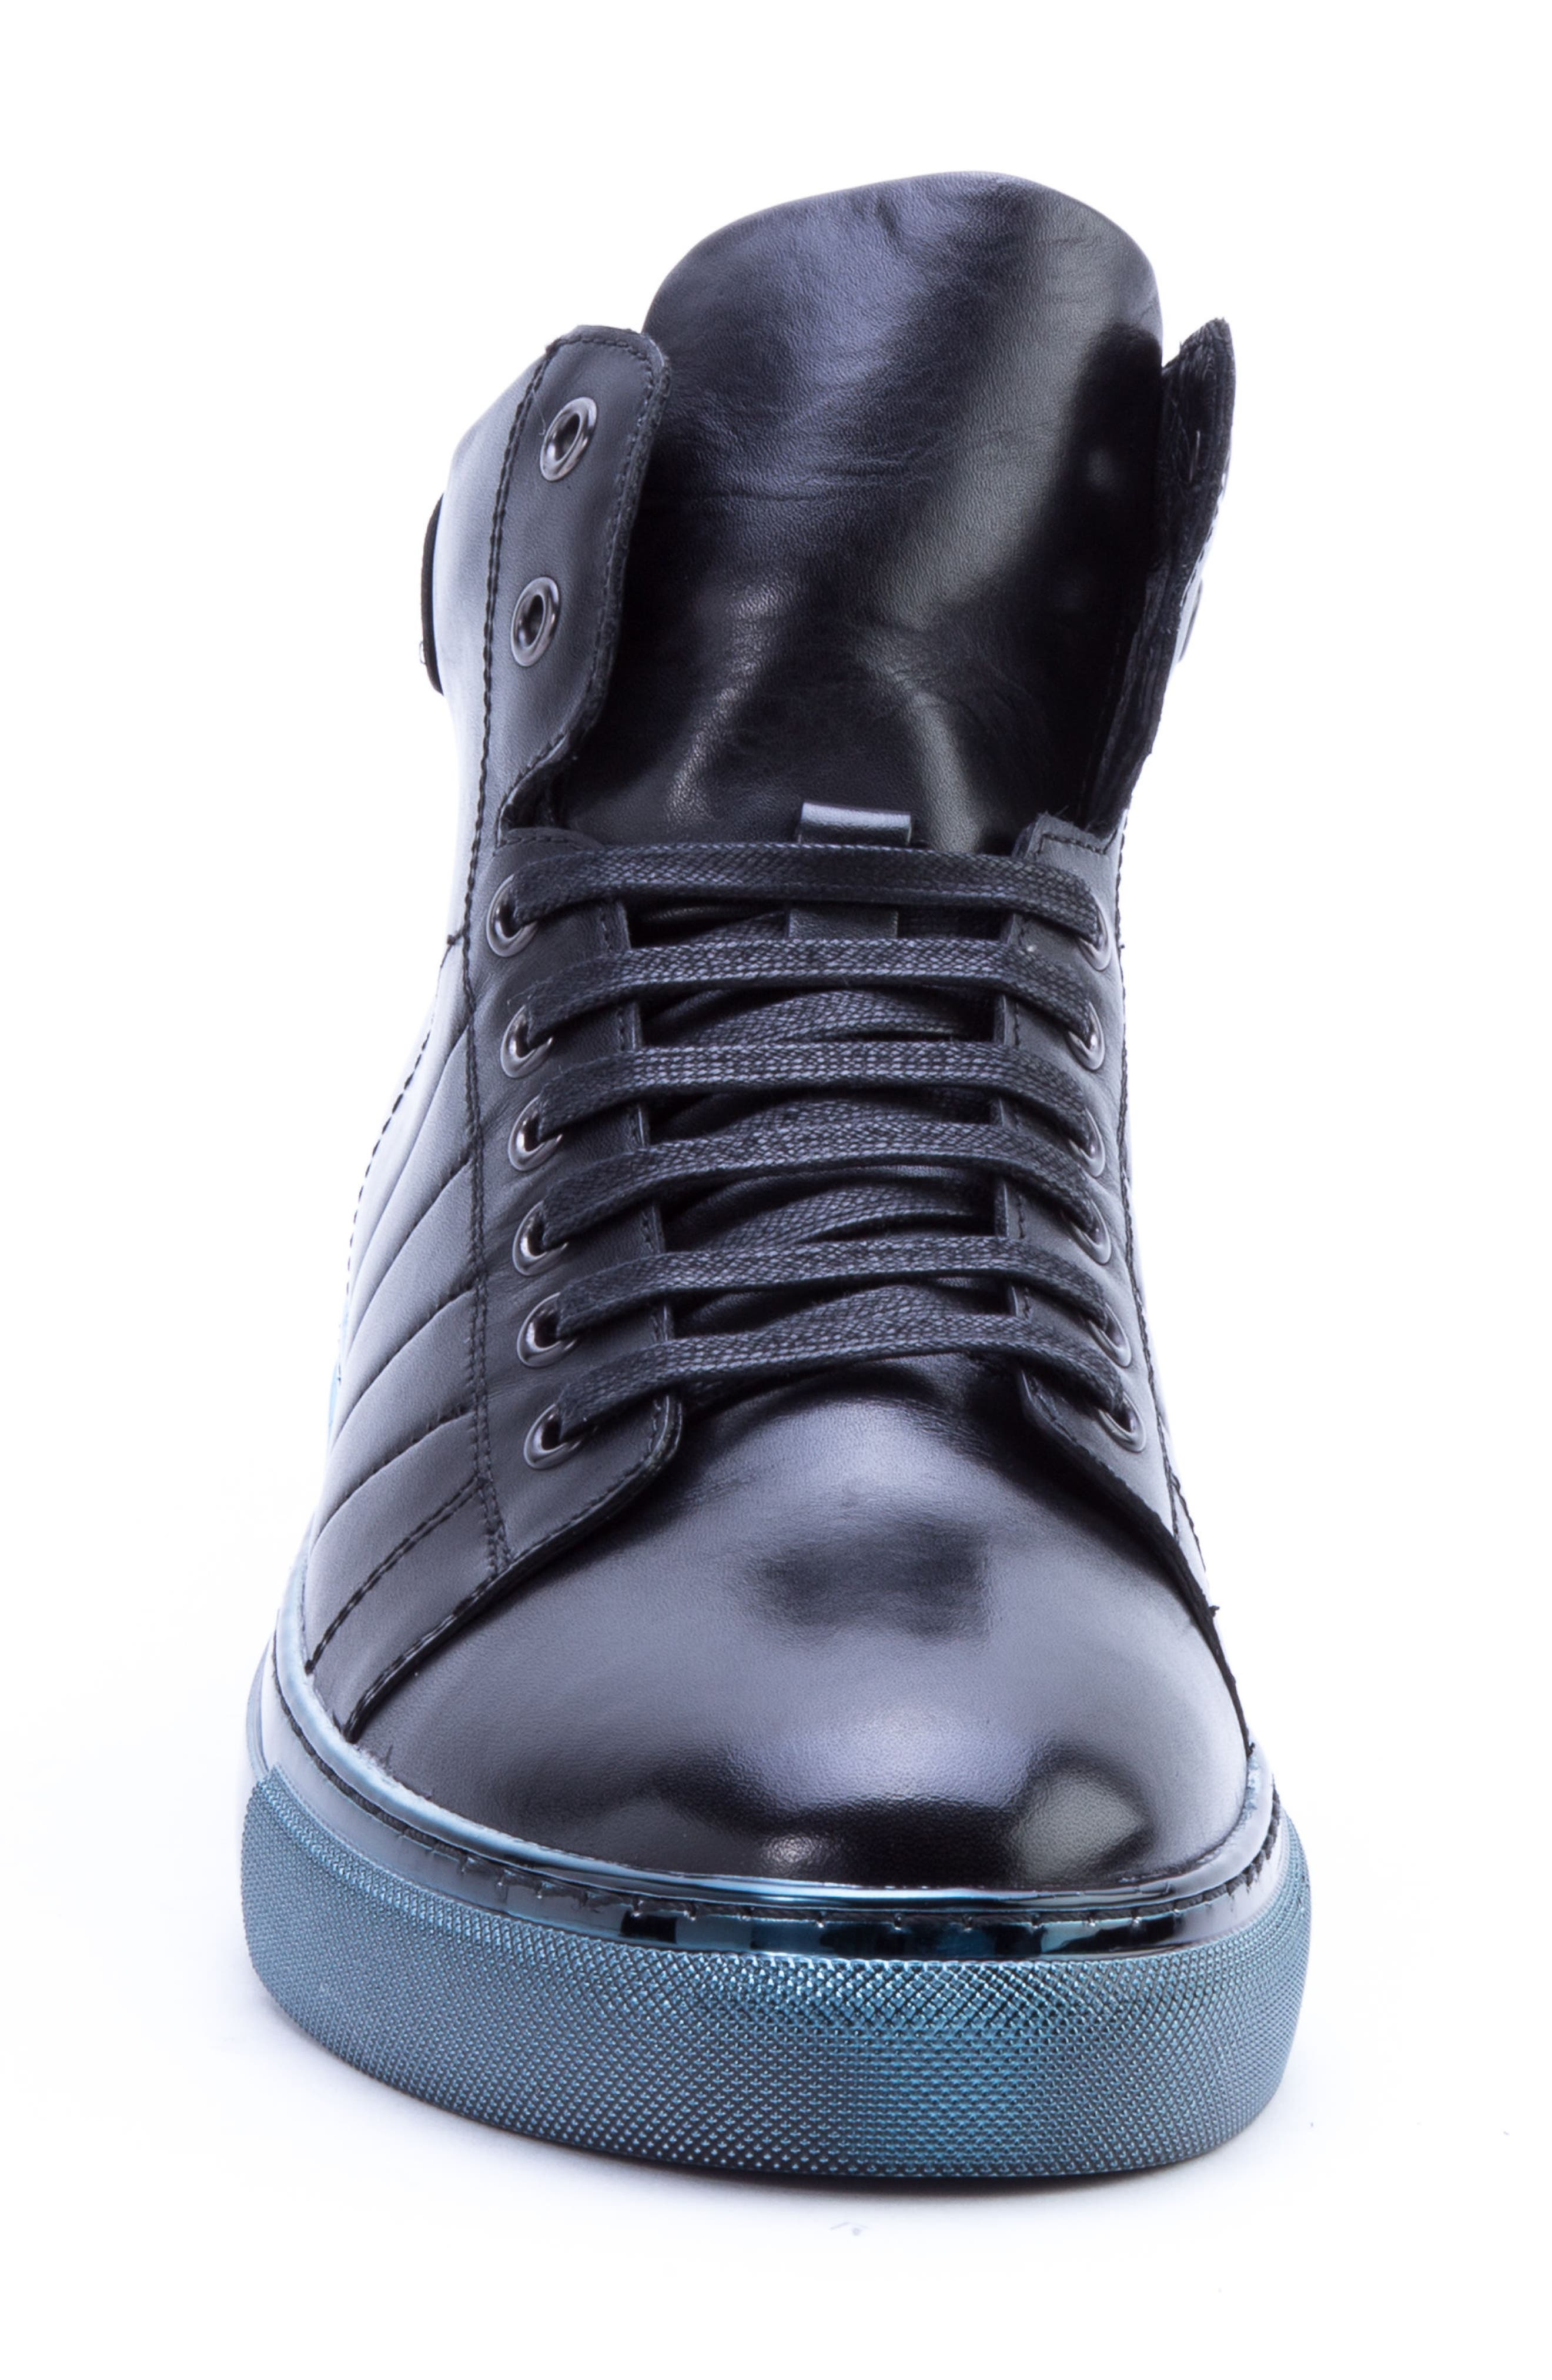 Hunter High Top Sneaker,                             Alternate thumbnail 4, color,                             NAVY LEATHER